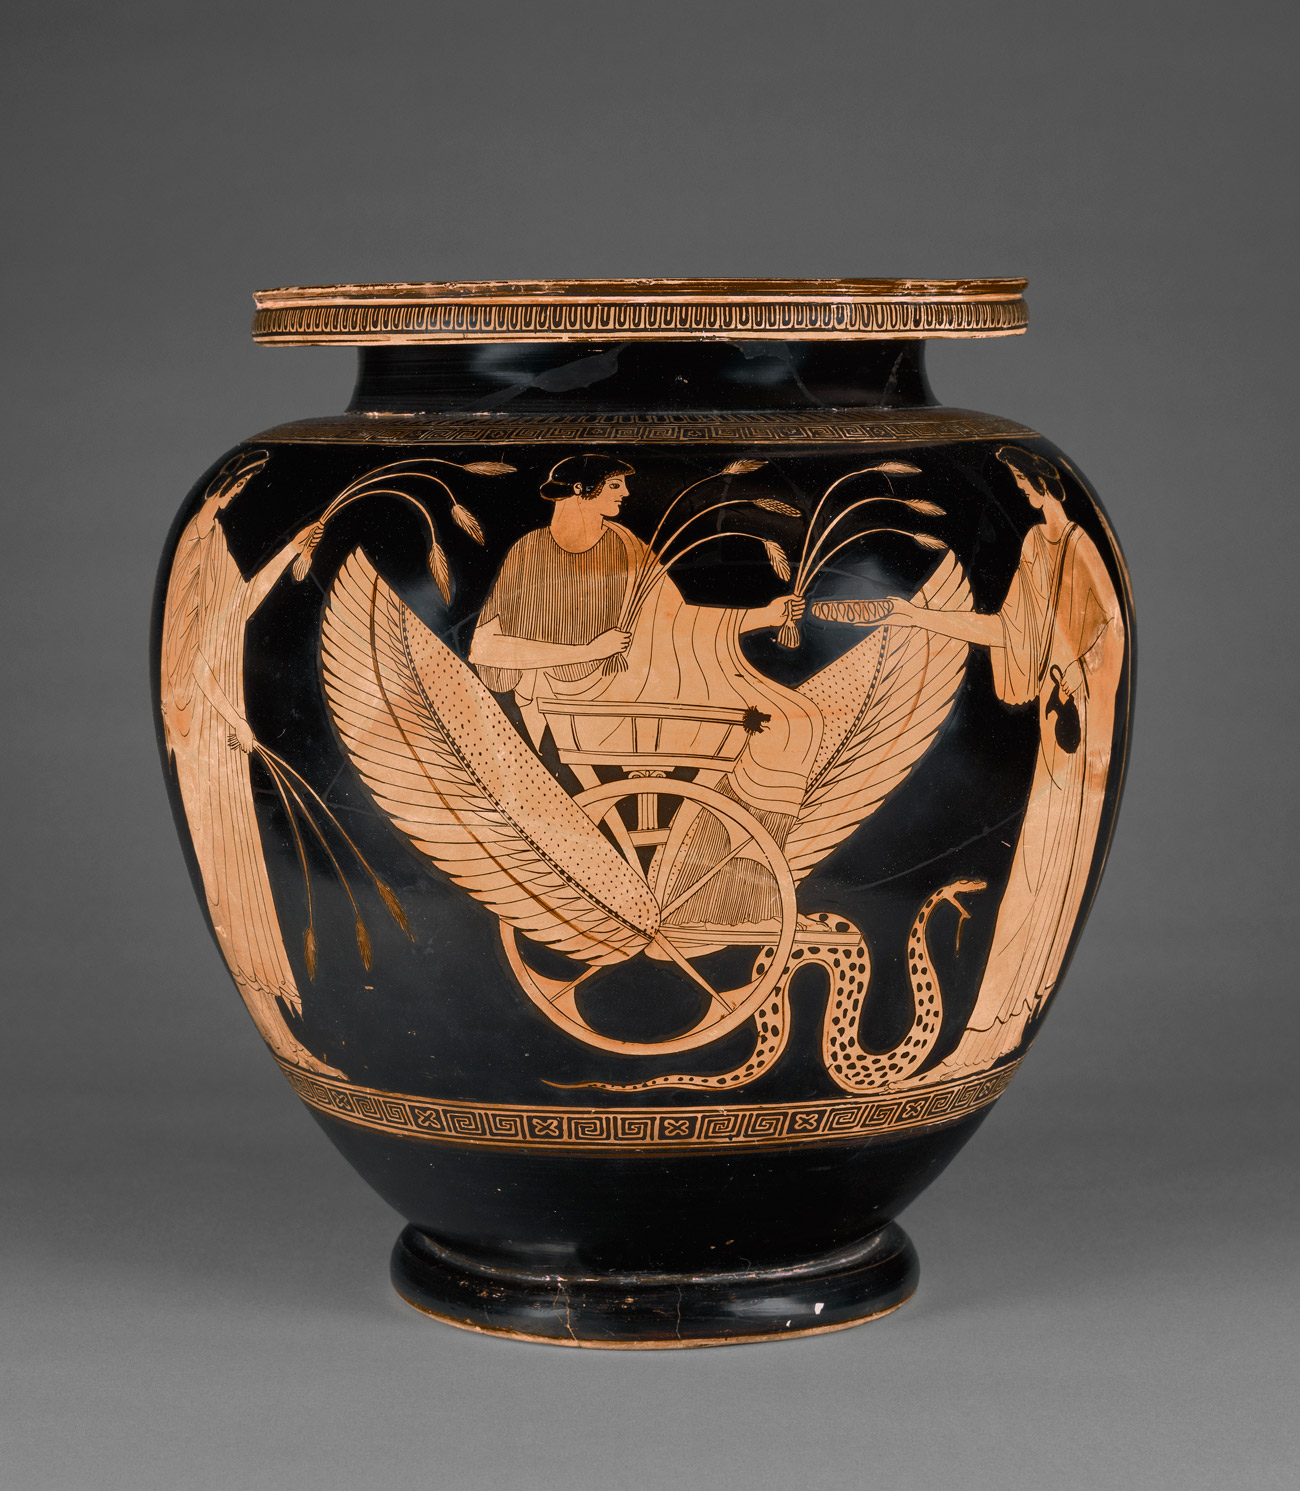 Greek vase with an image of a person sitting in a carriage holding stalks of wheat.